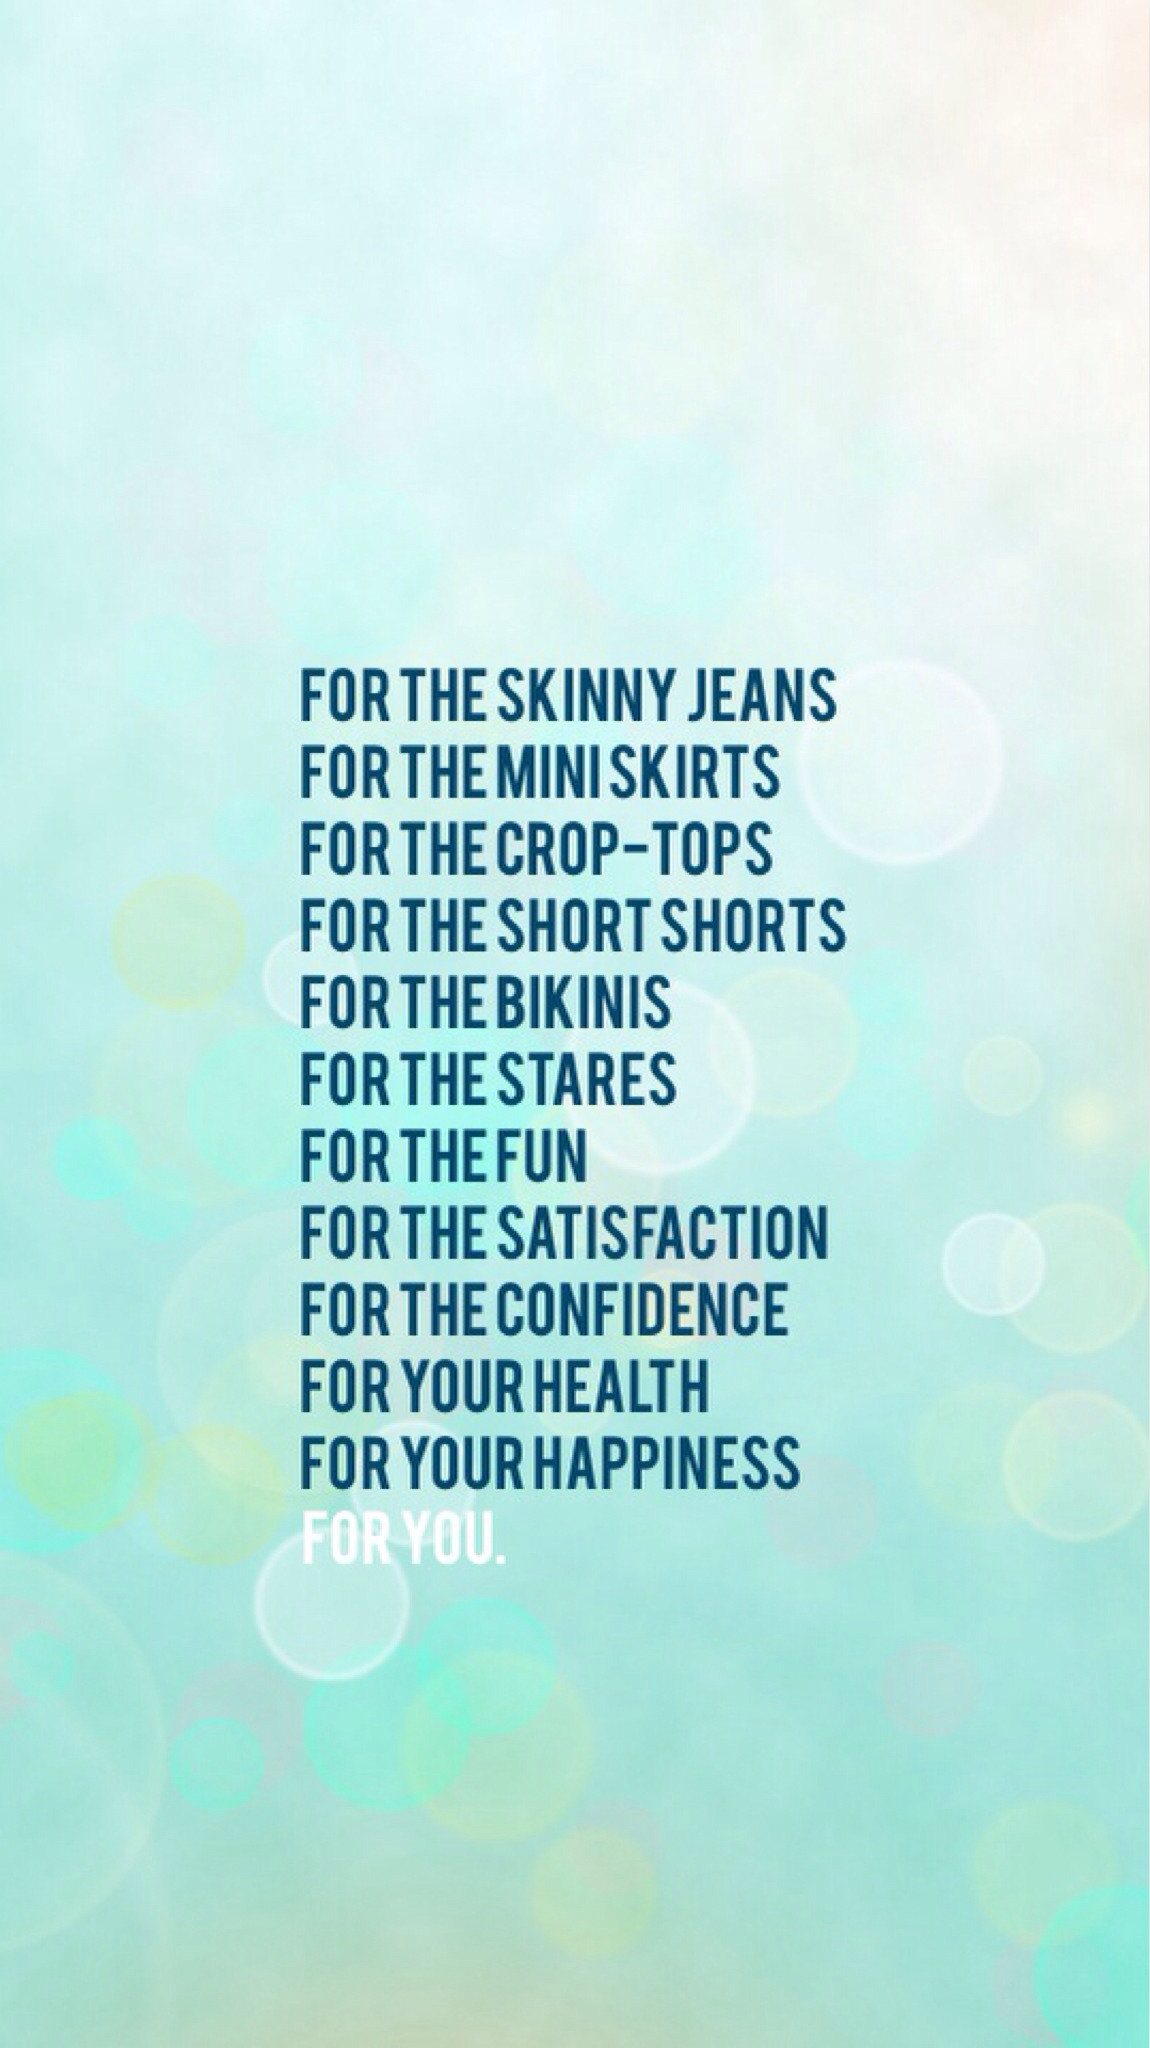 1000+ images about Fitness☀ on Pinterest | Easy morning workout, Jumping  jacks and Fitness motivation wallpaper